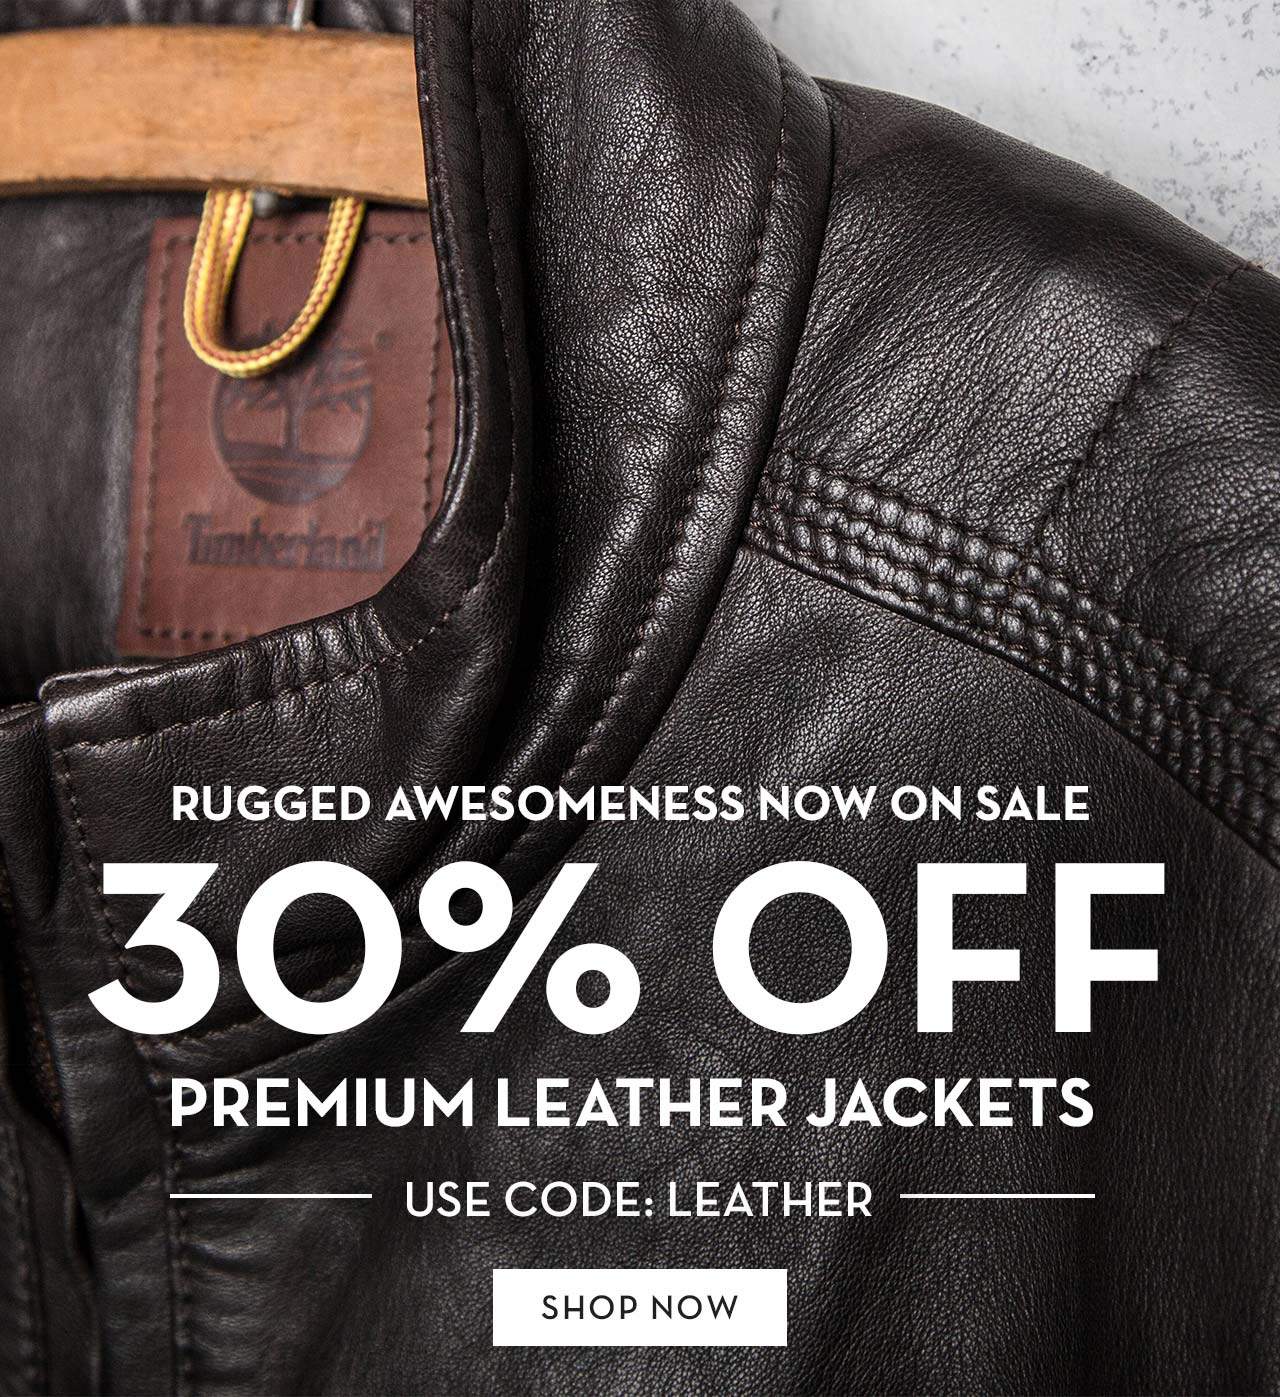 Rugged Awesomeness Now On Sale 30% Off Premium Leather Jackets Use Code: LEATHER Shop Now